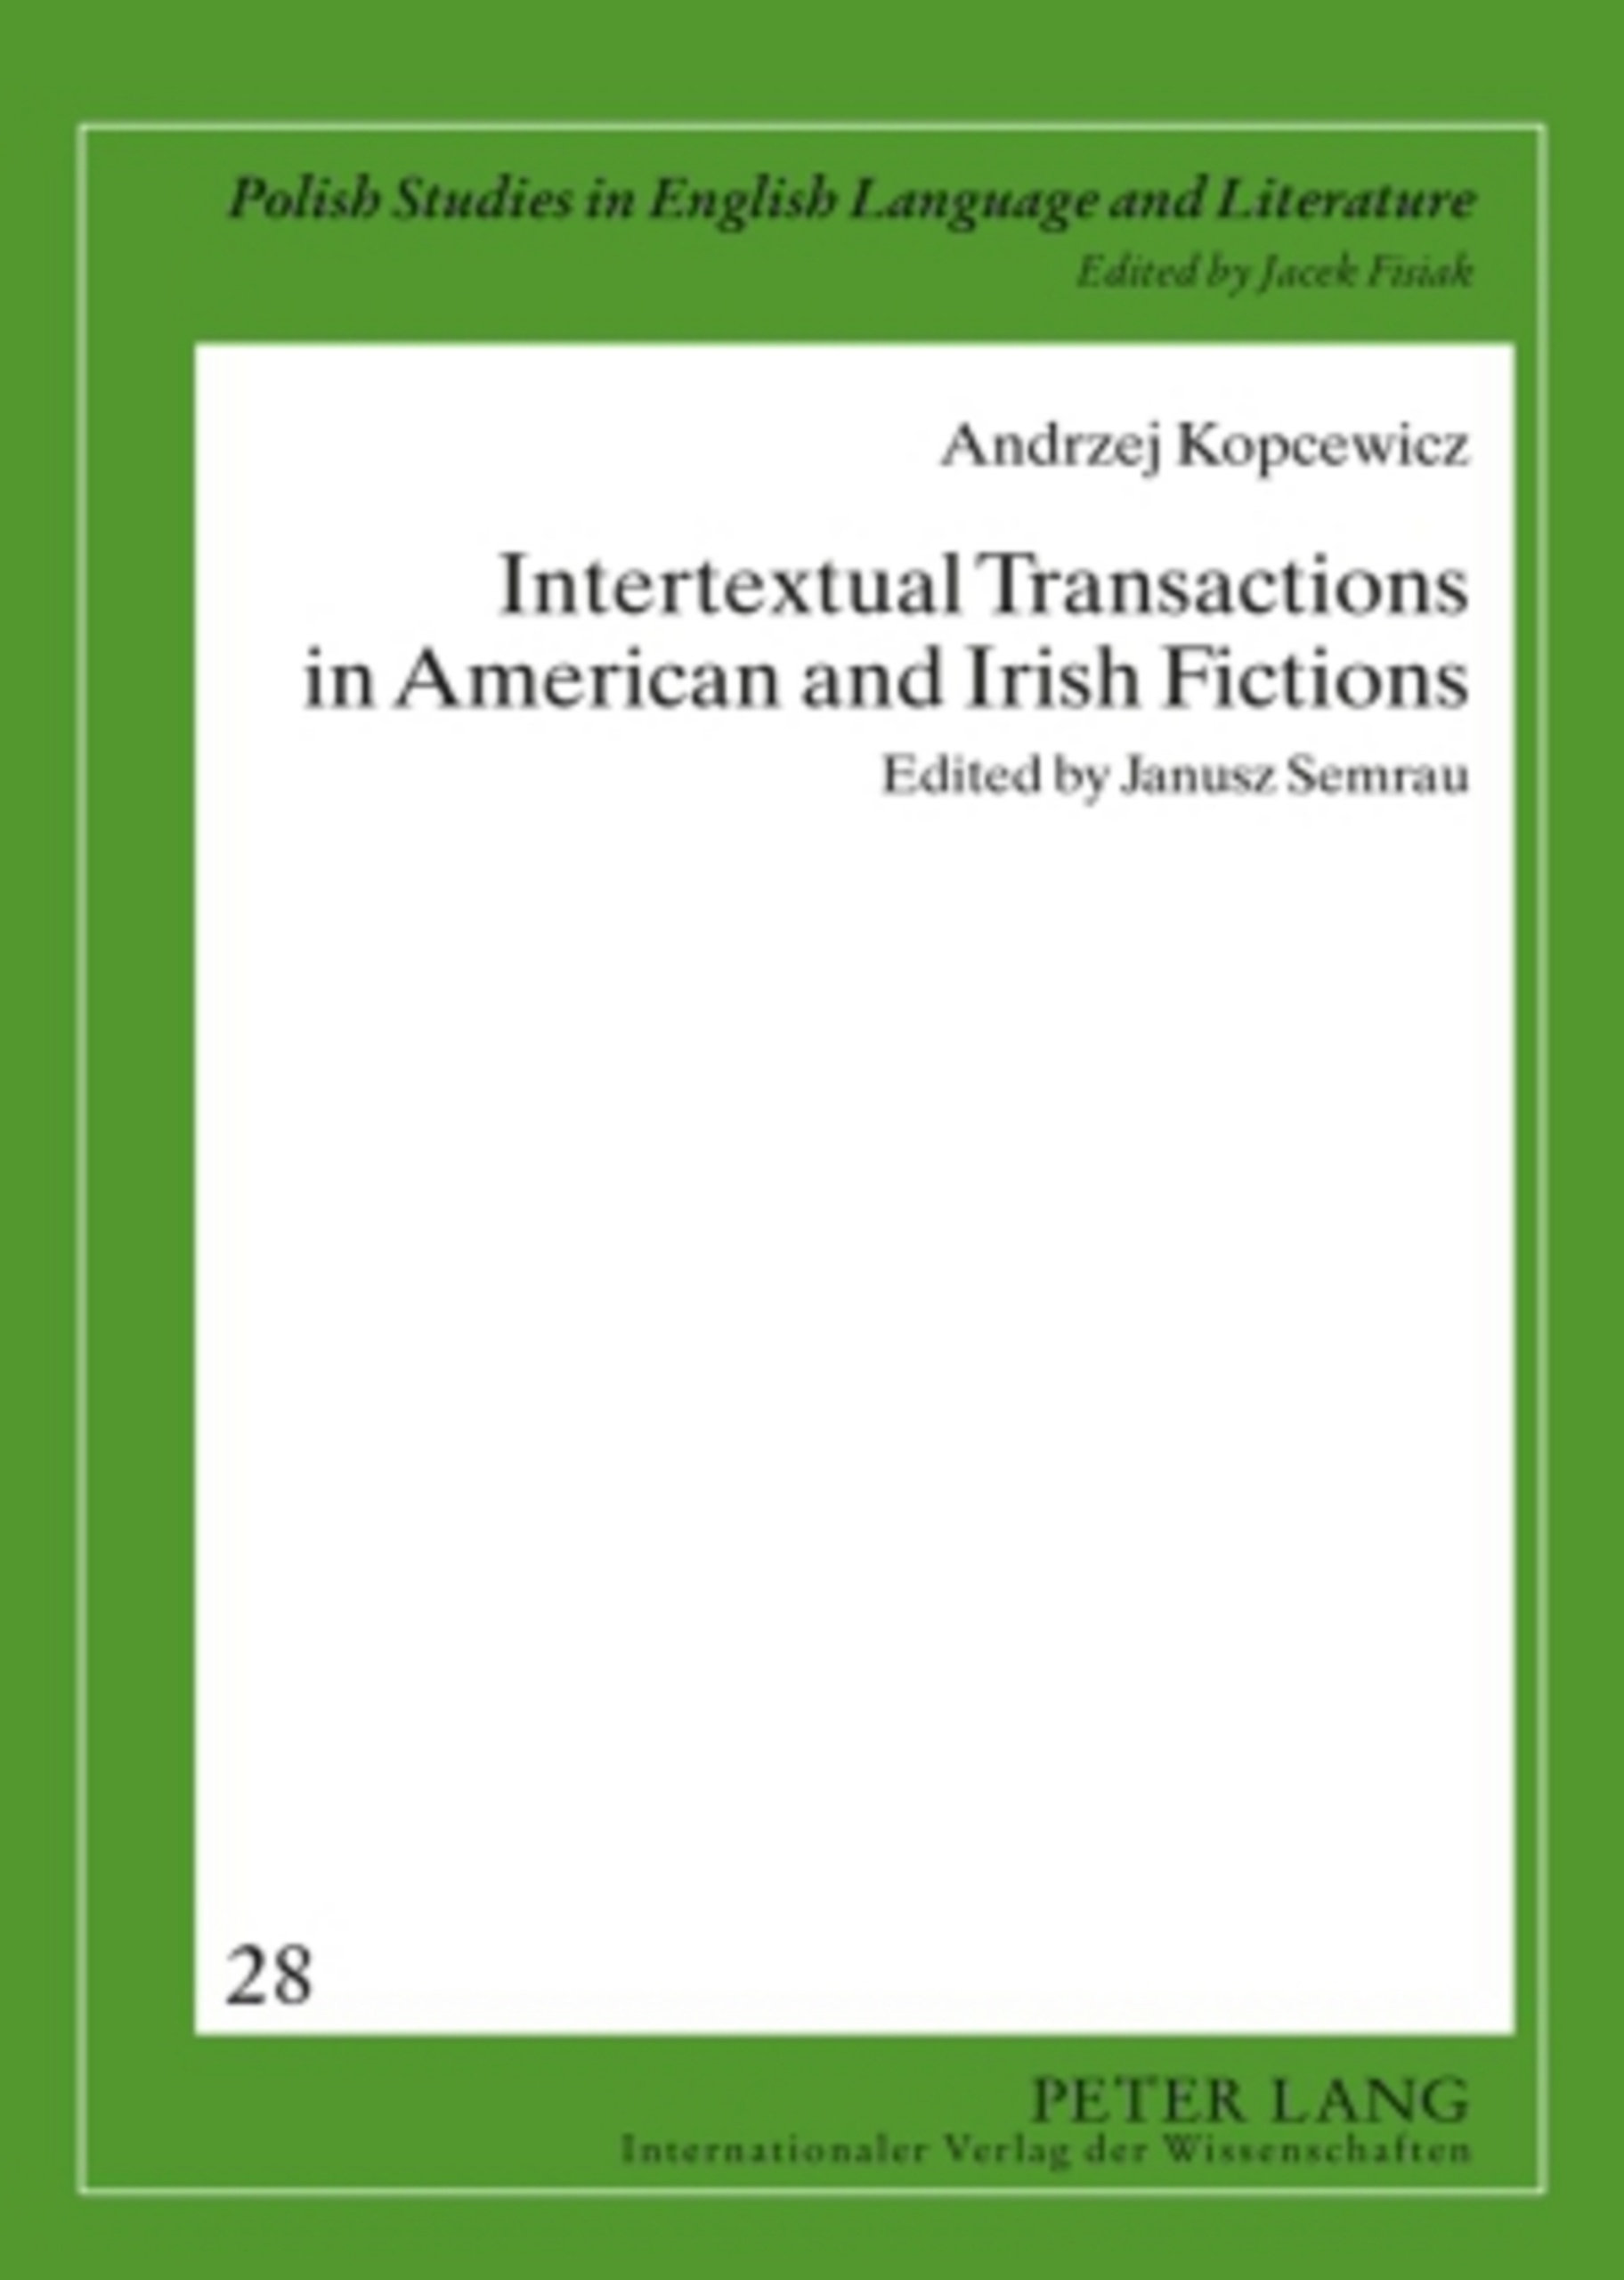 Title: Intertextual Transactions in American and Irish Fictions